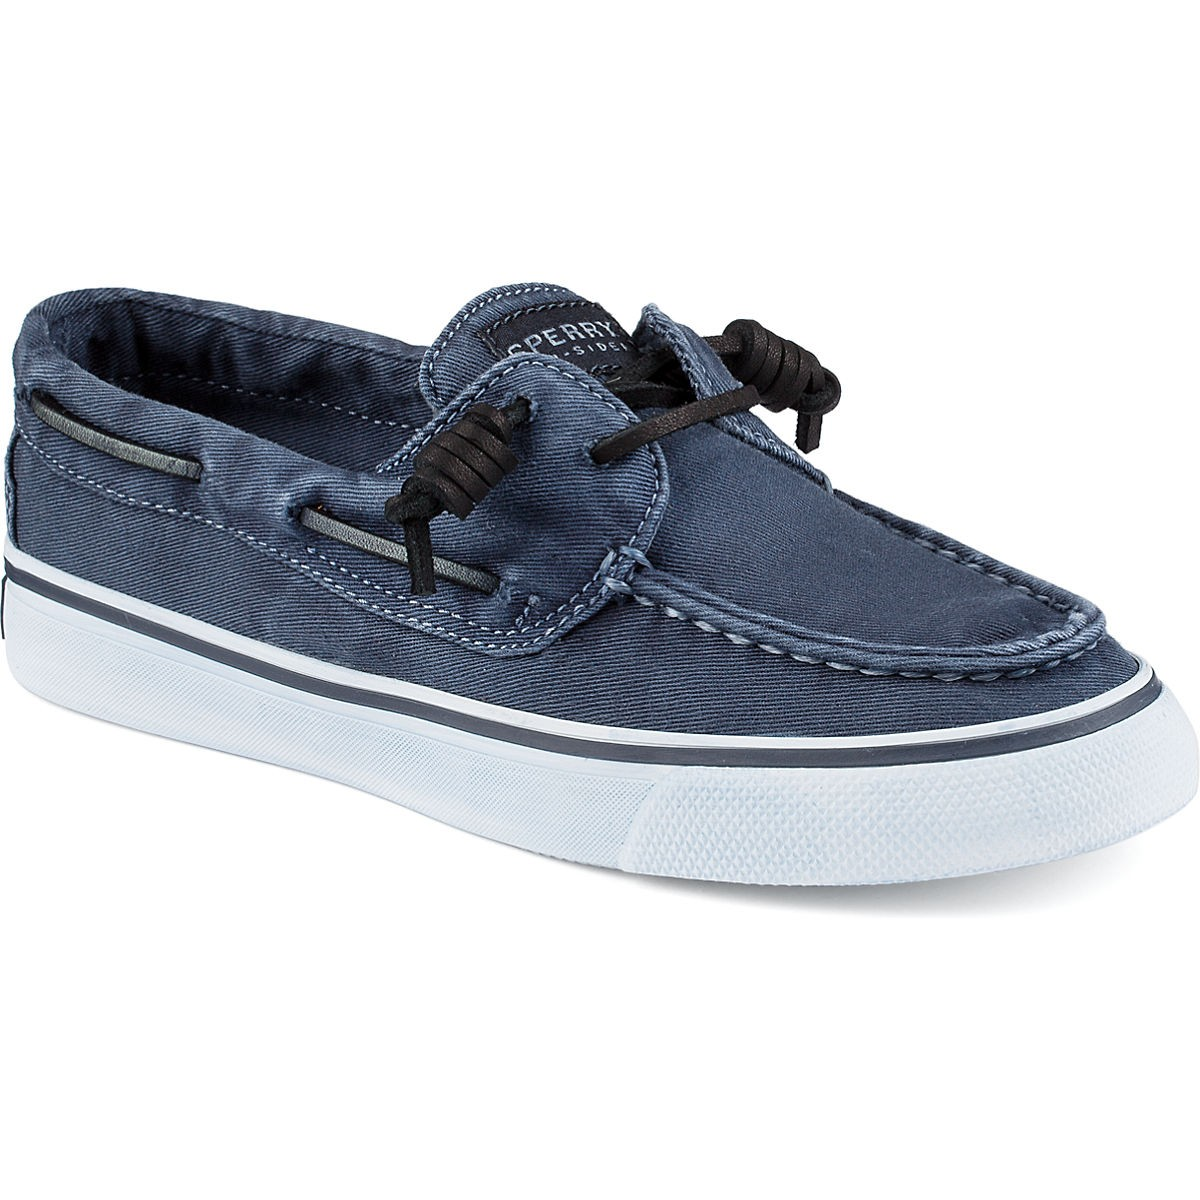 Sperry Top Sider Women S Bahama Washed Canvas 2 Eye Boat